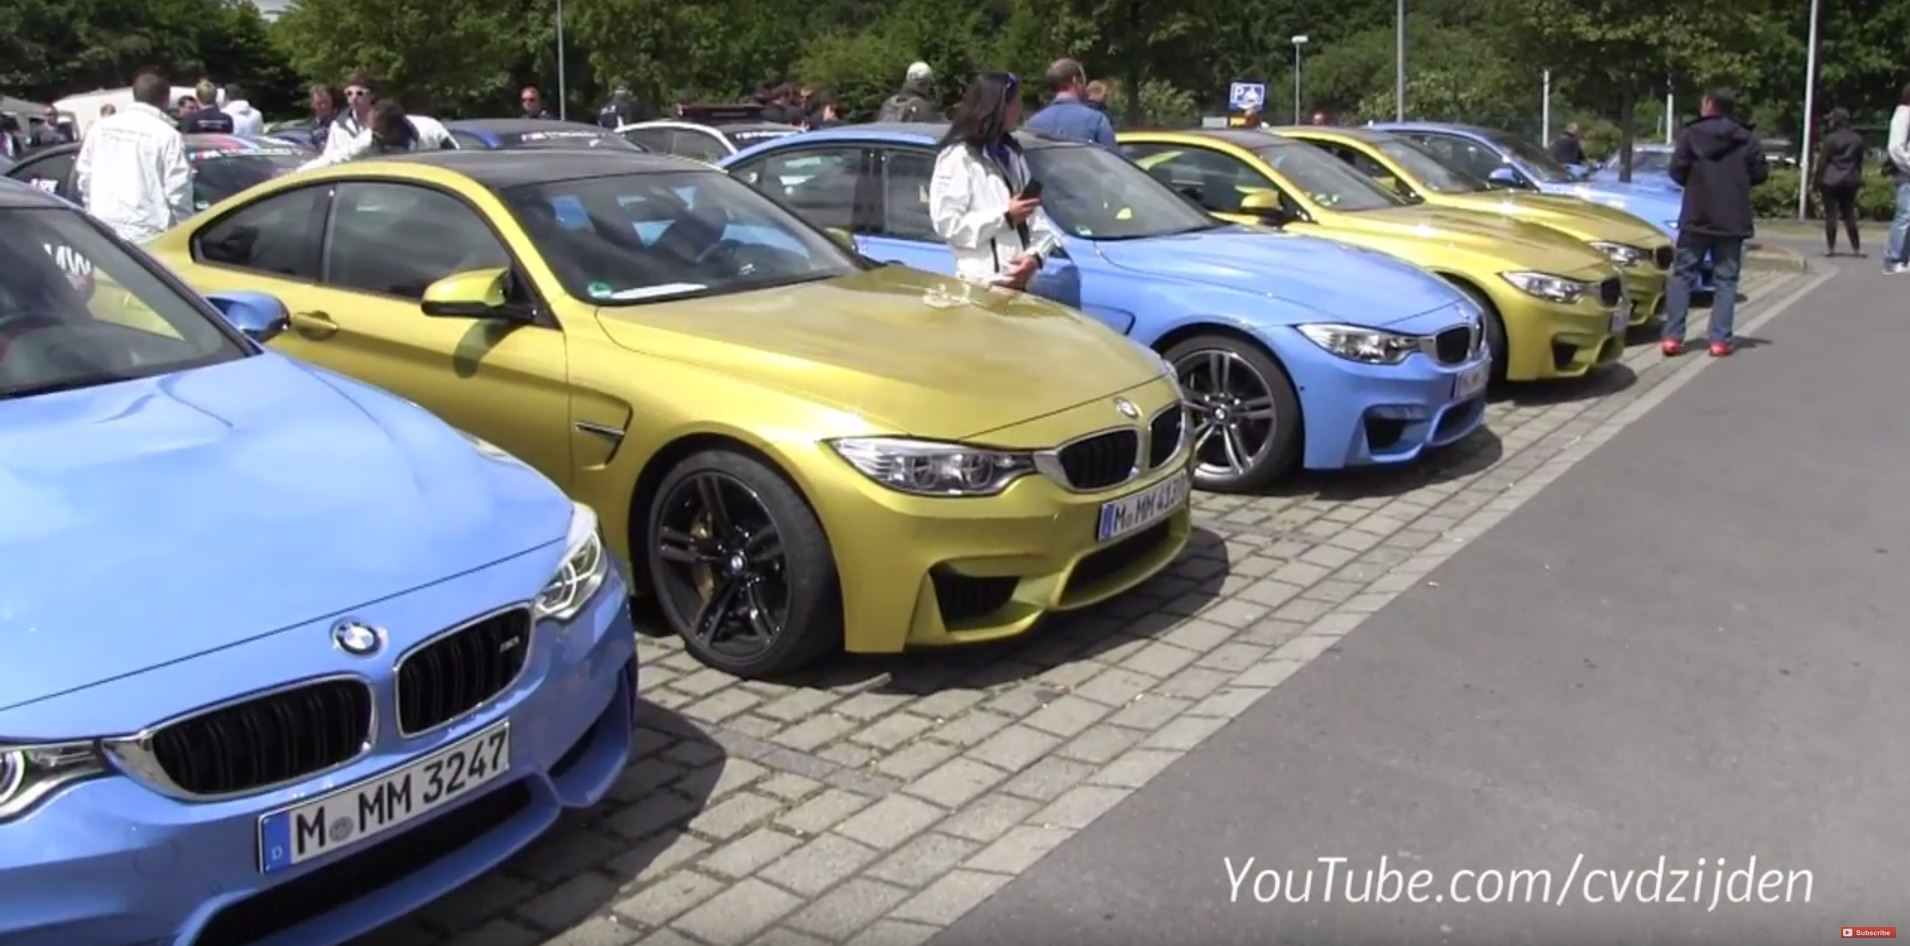 BMW M Parking Lot Heaven Has the M1 M3 M4 M5 Touring and Much